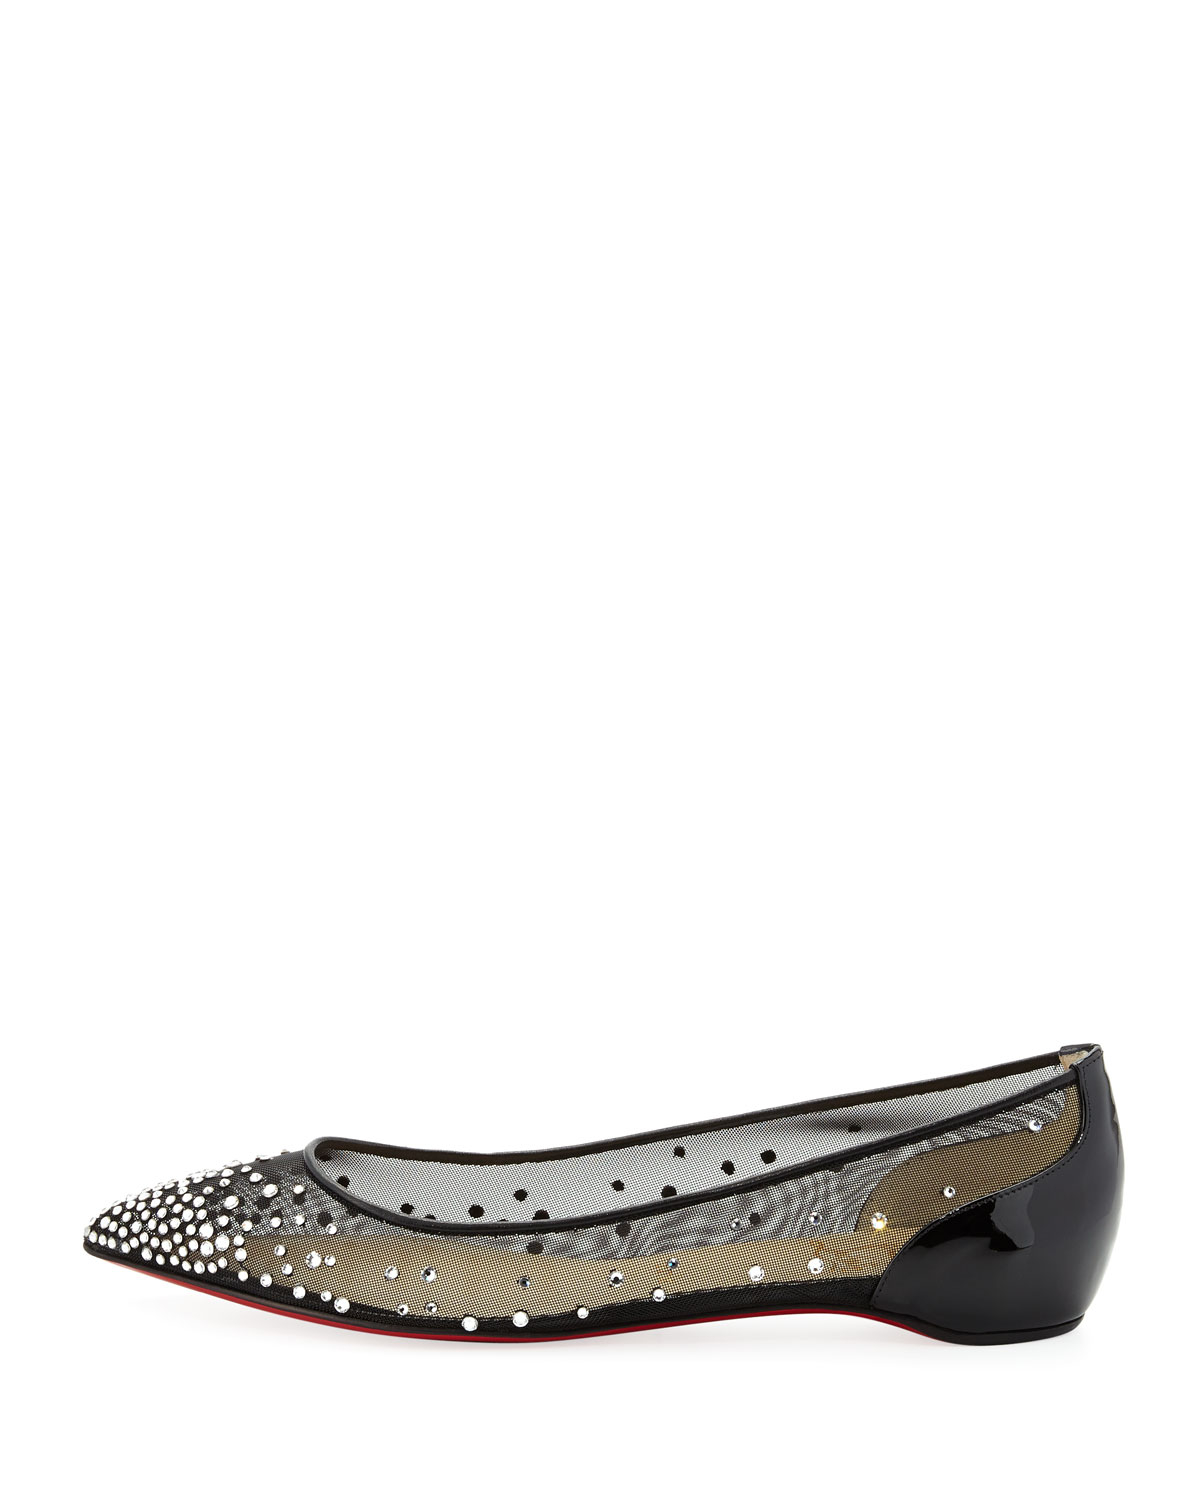 christian-louboutin-silver-body-strass-pointed-toe-ballerina-flat-silver-product-1-18683276-2-184781622-normal.jpeg